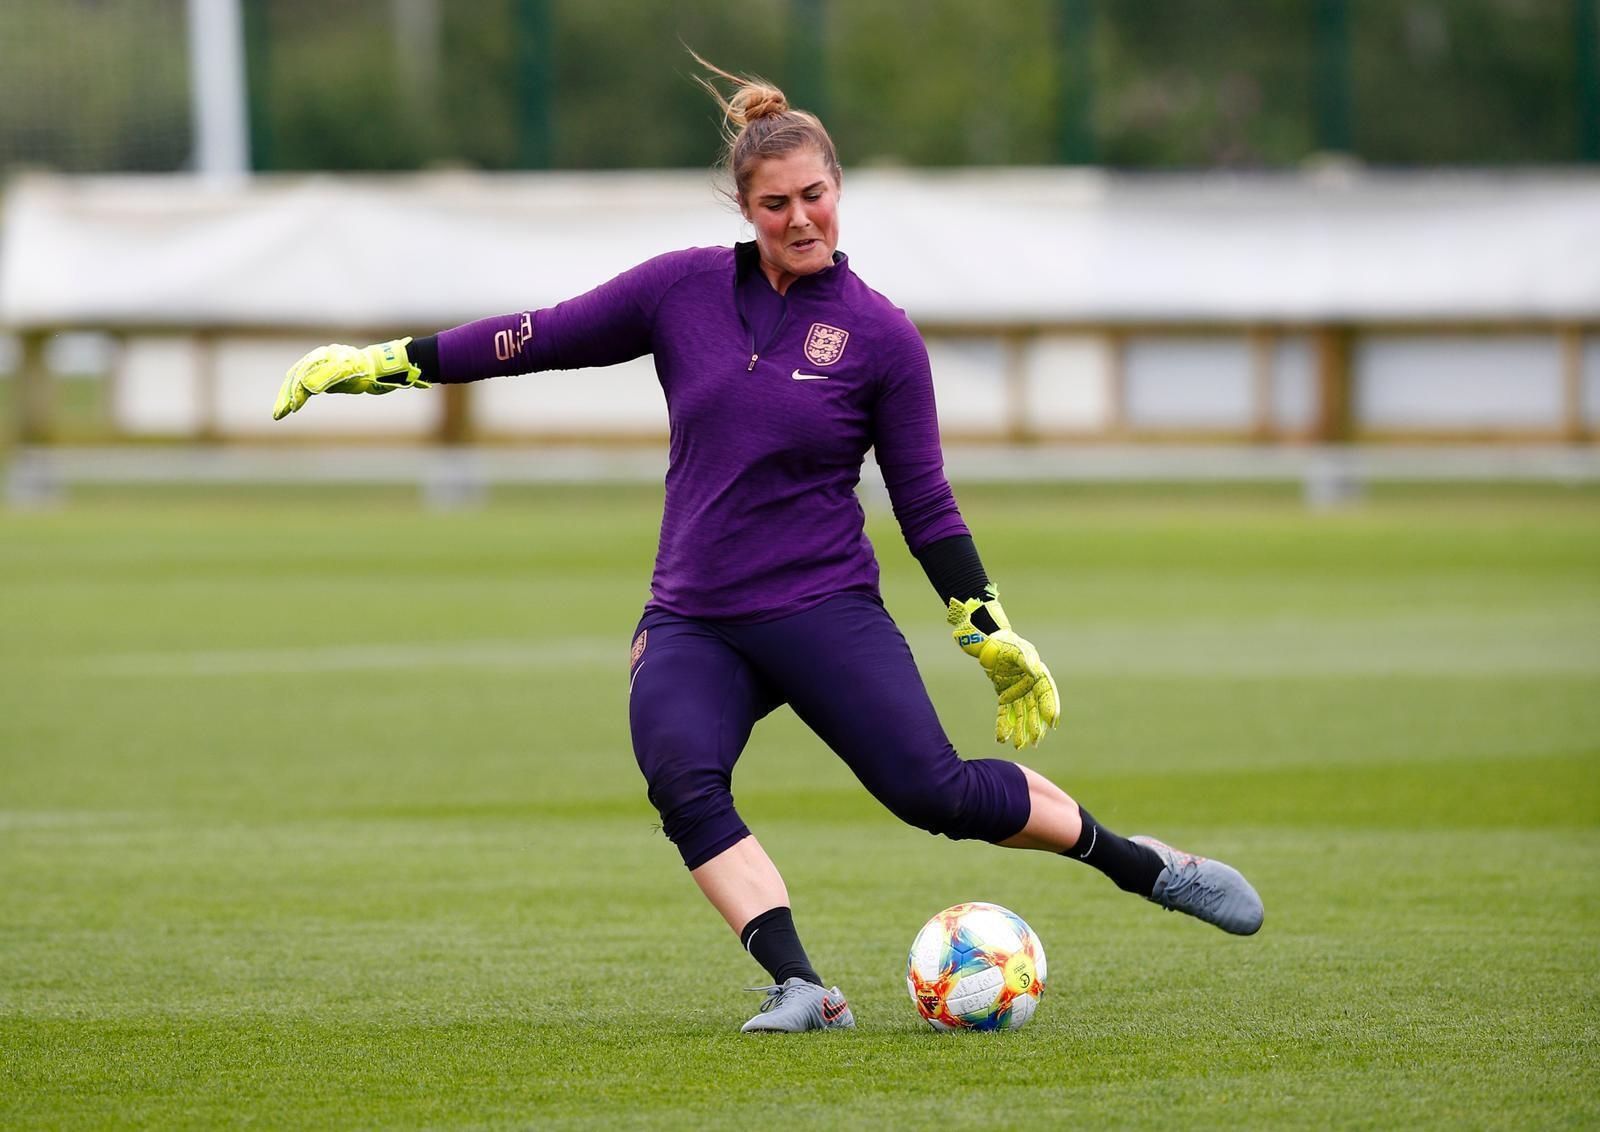 FIFA World Cup Special: Mary Earps